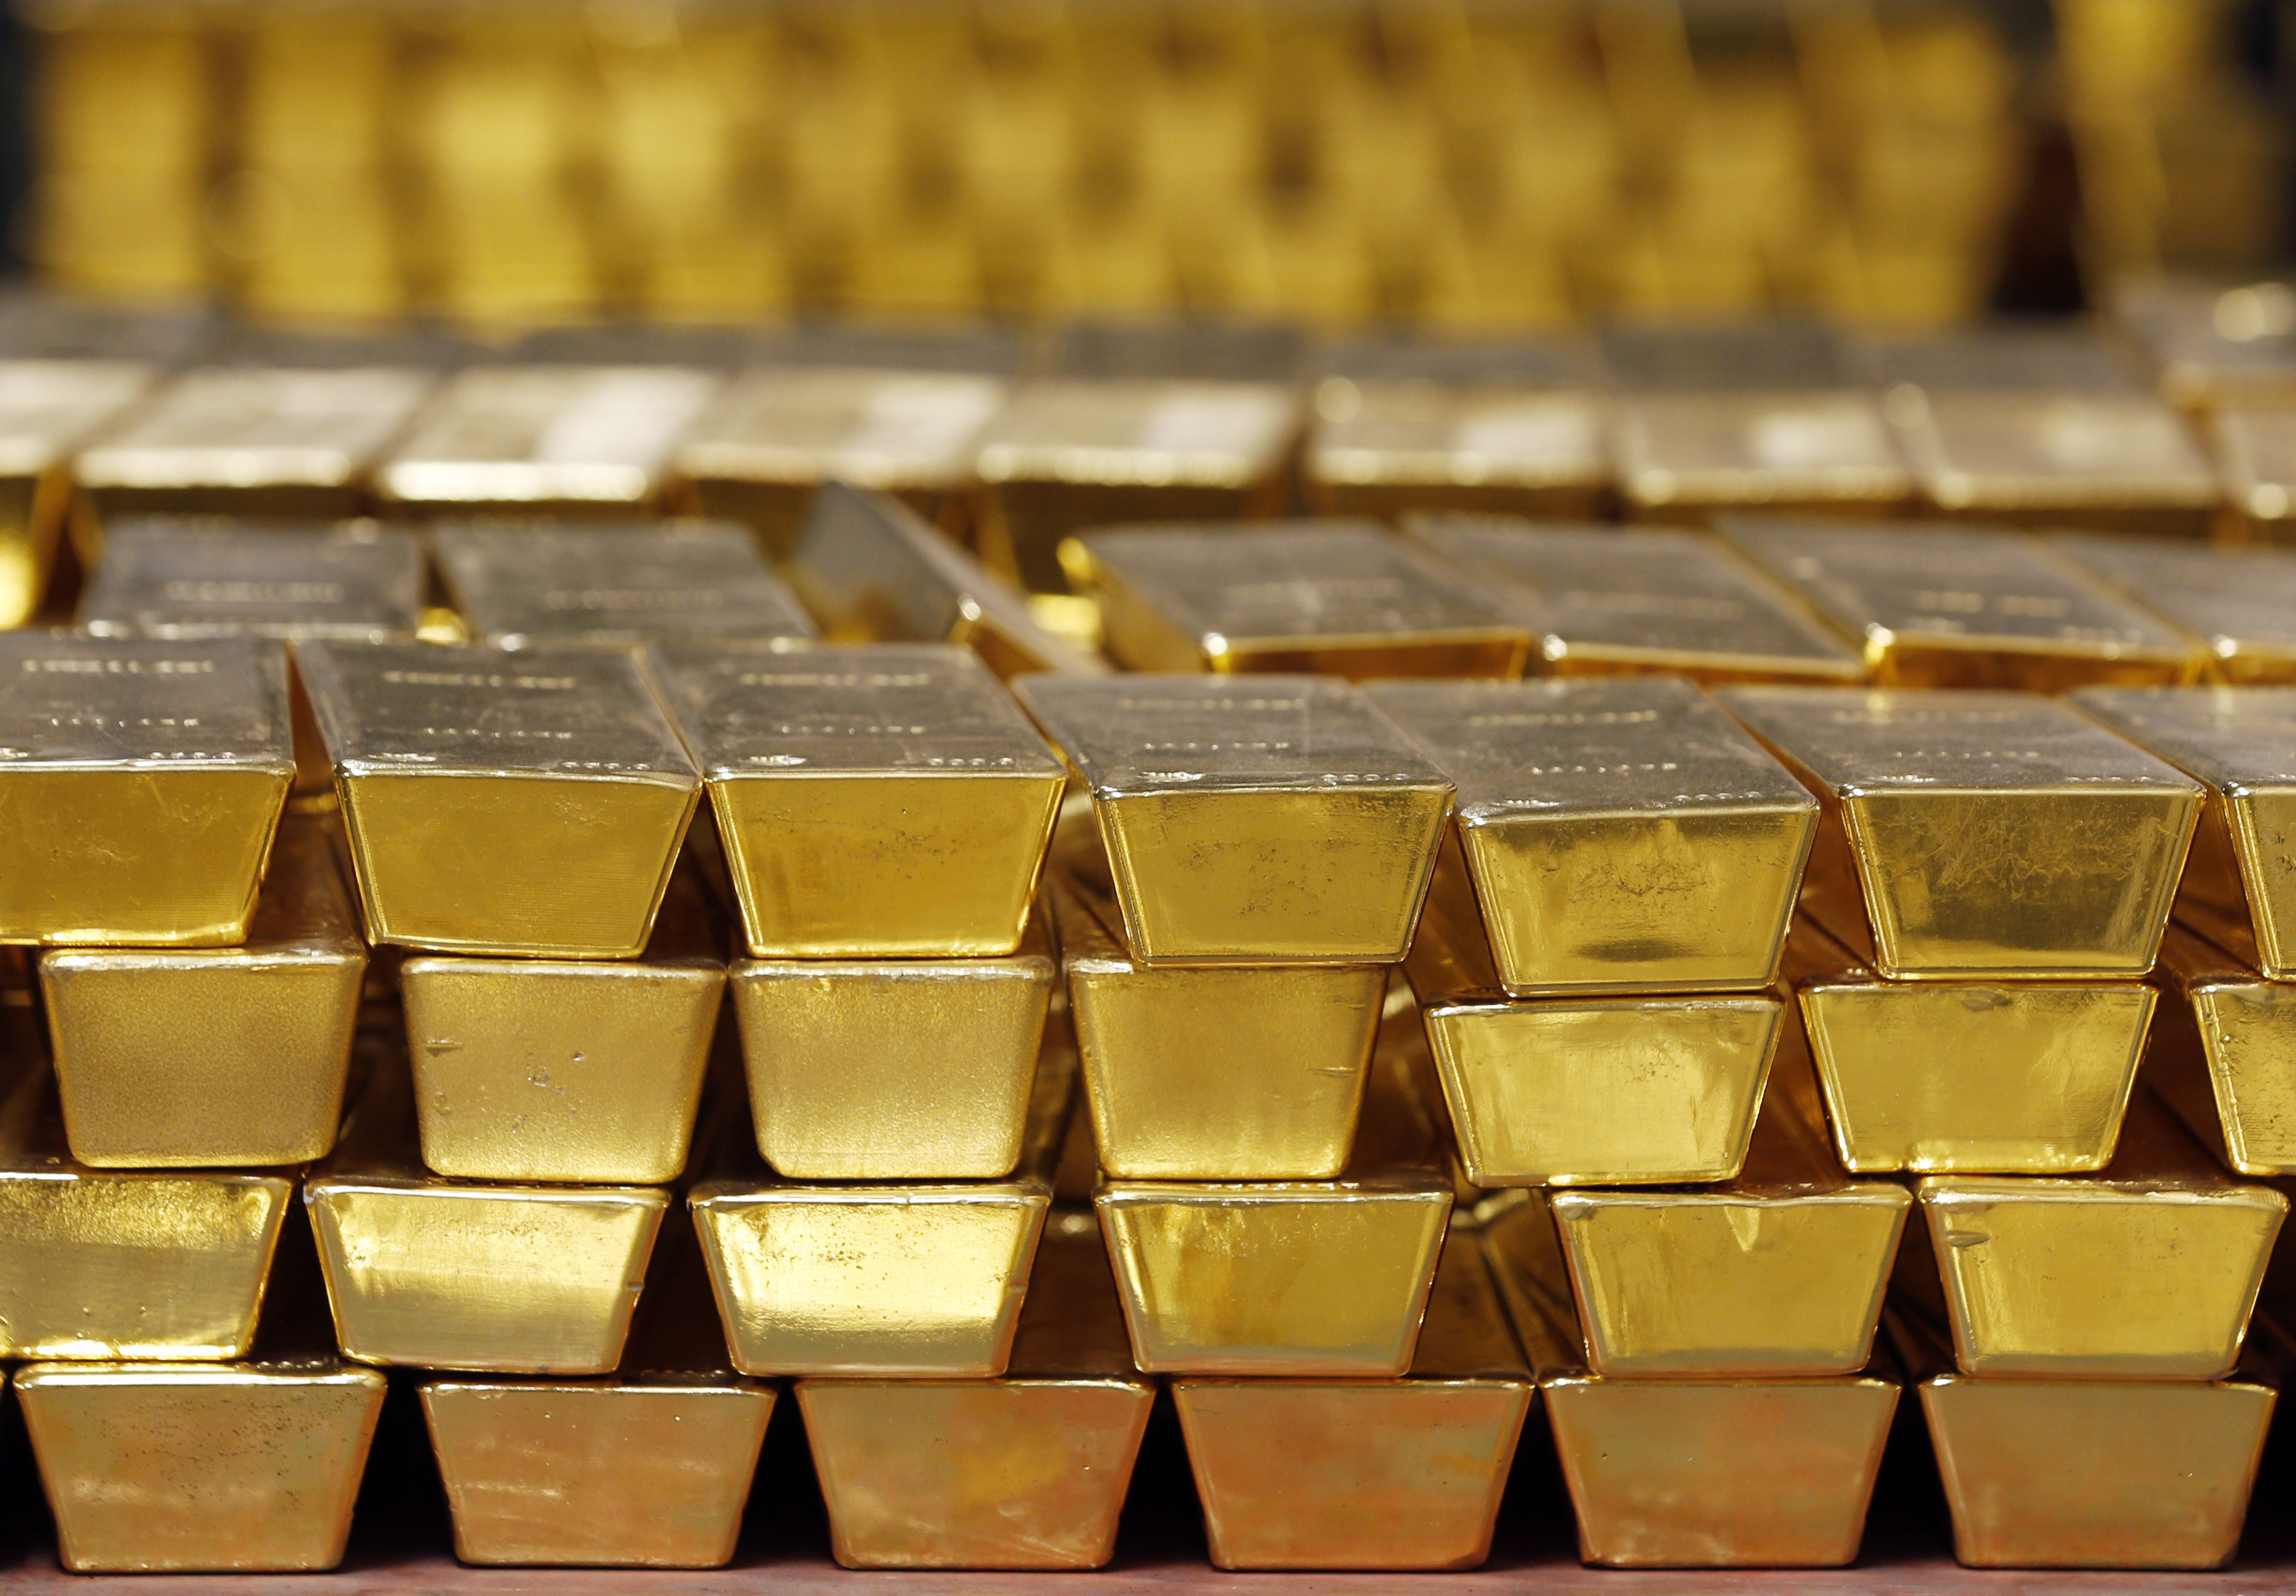 Gold reserves can help alleviate financial crisis in Lebanon: analysts